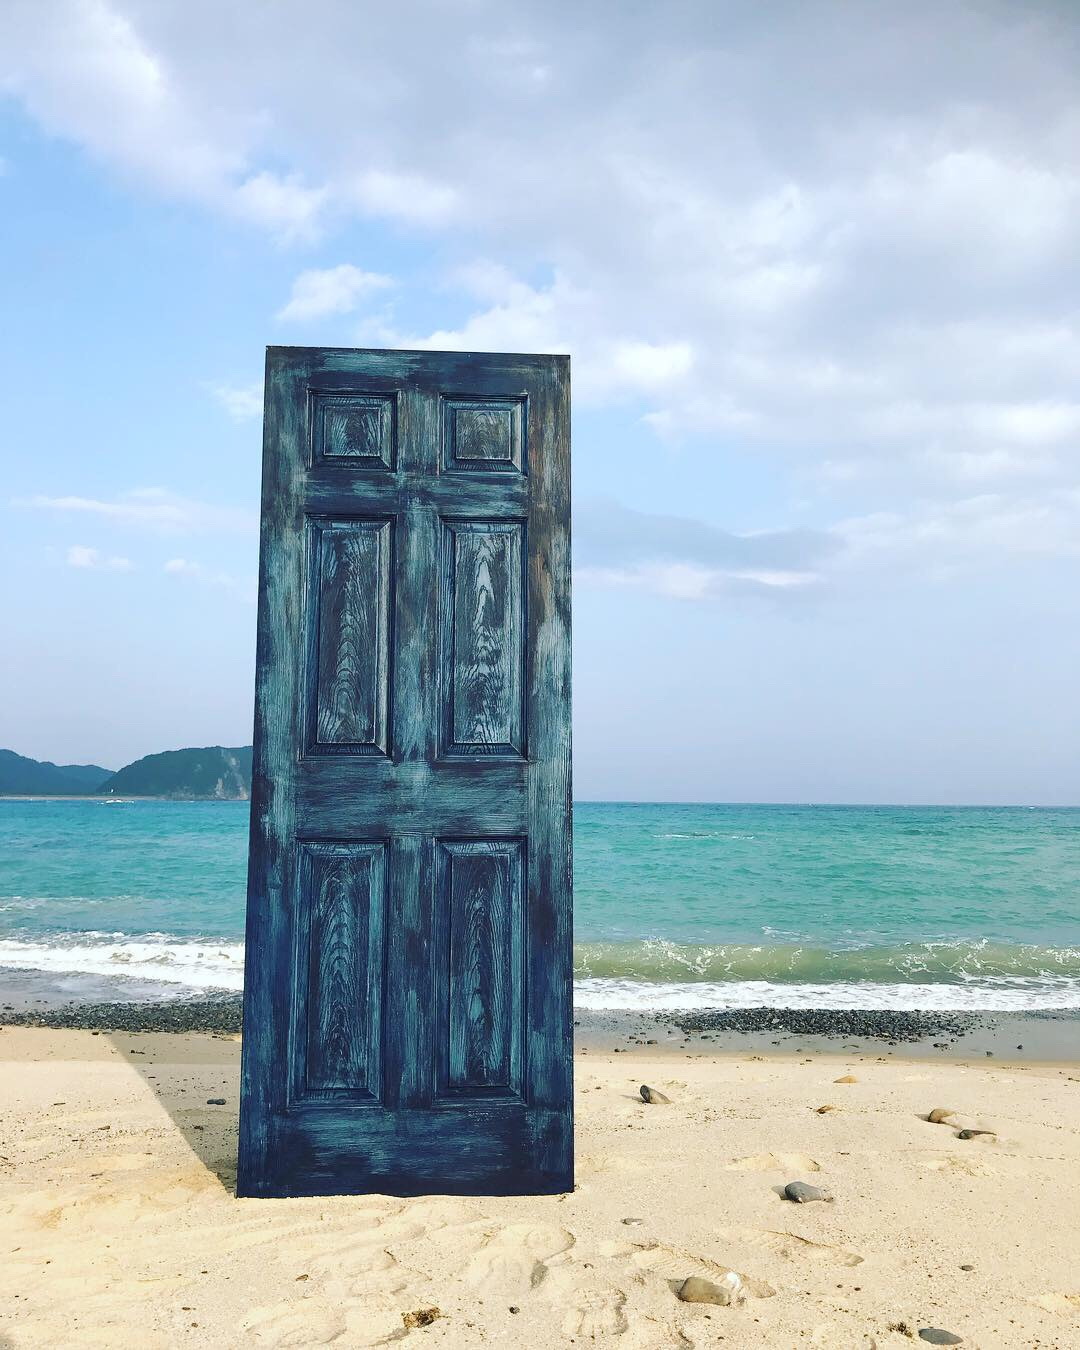 The indigoblue door🌊